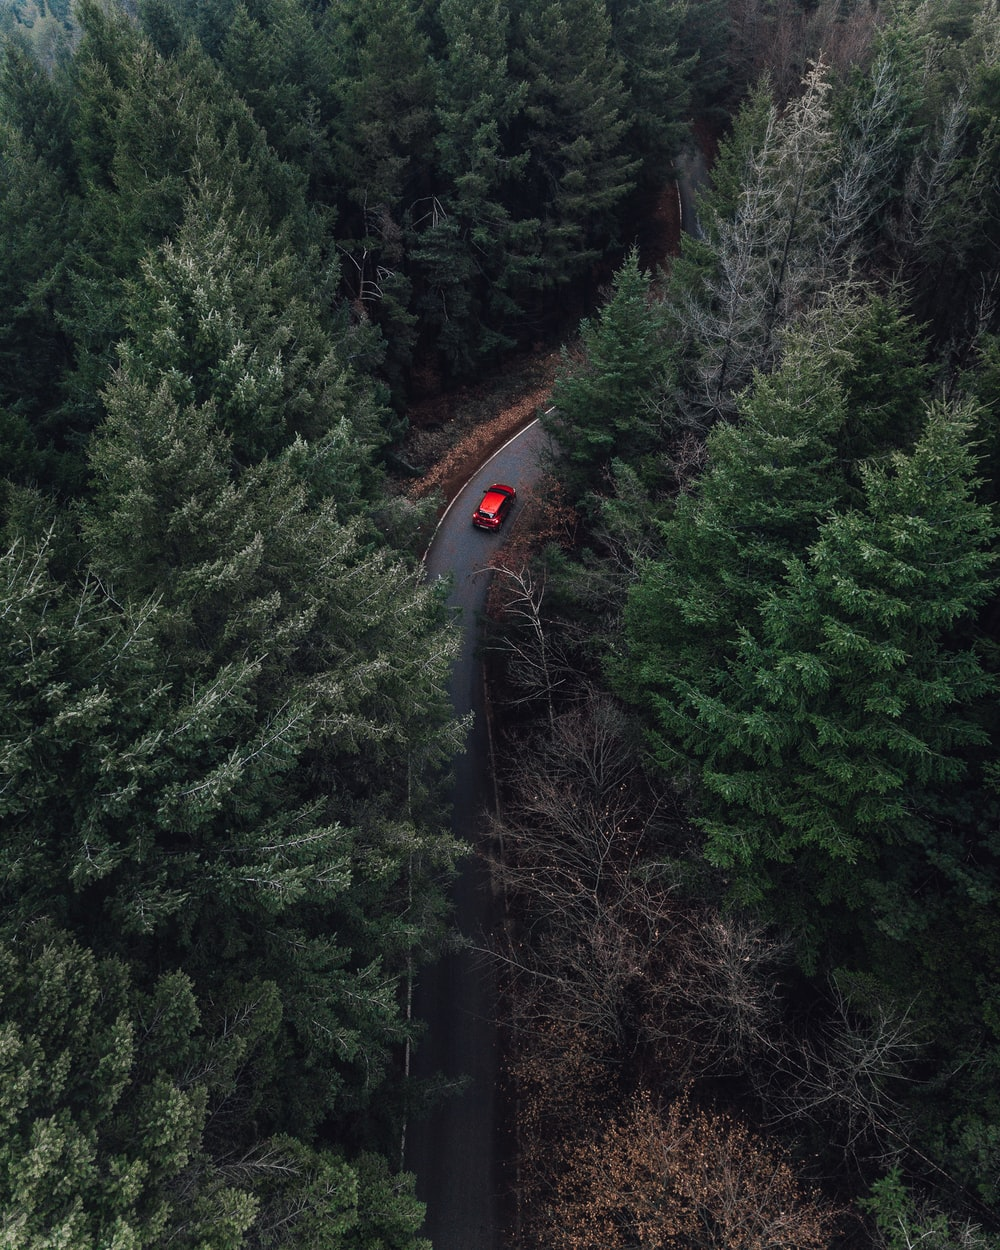 aerial view of red car on street between pine trees